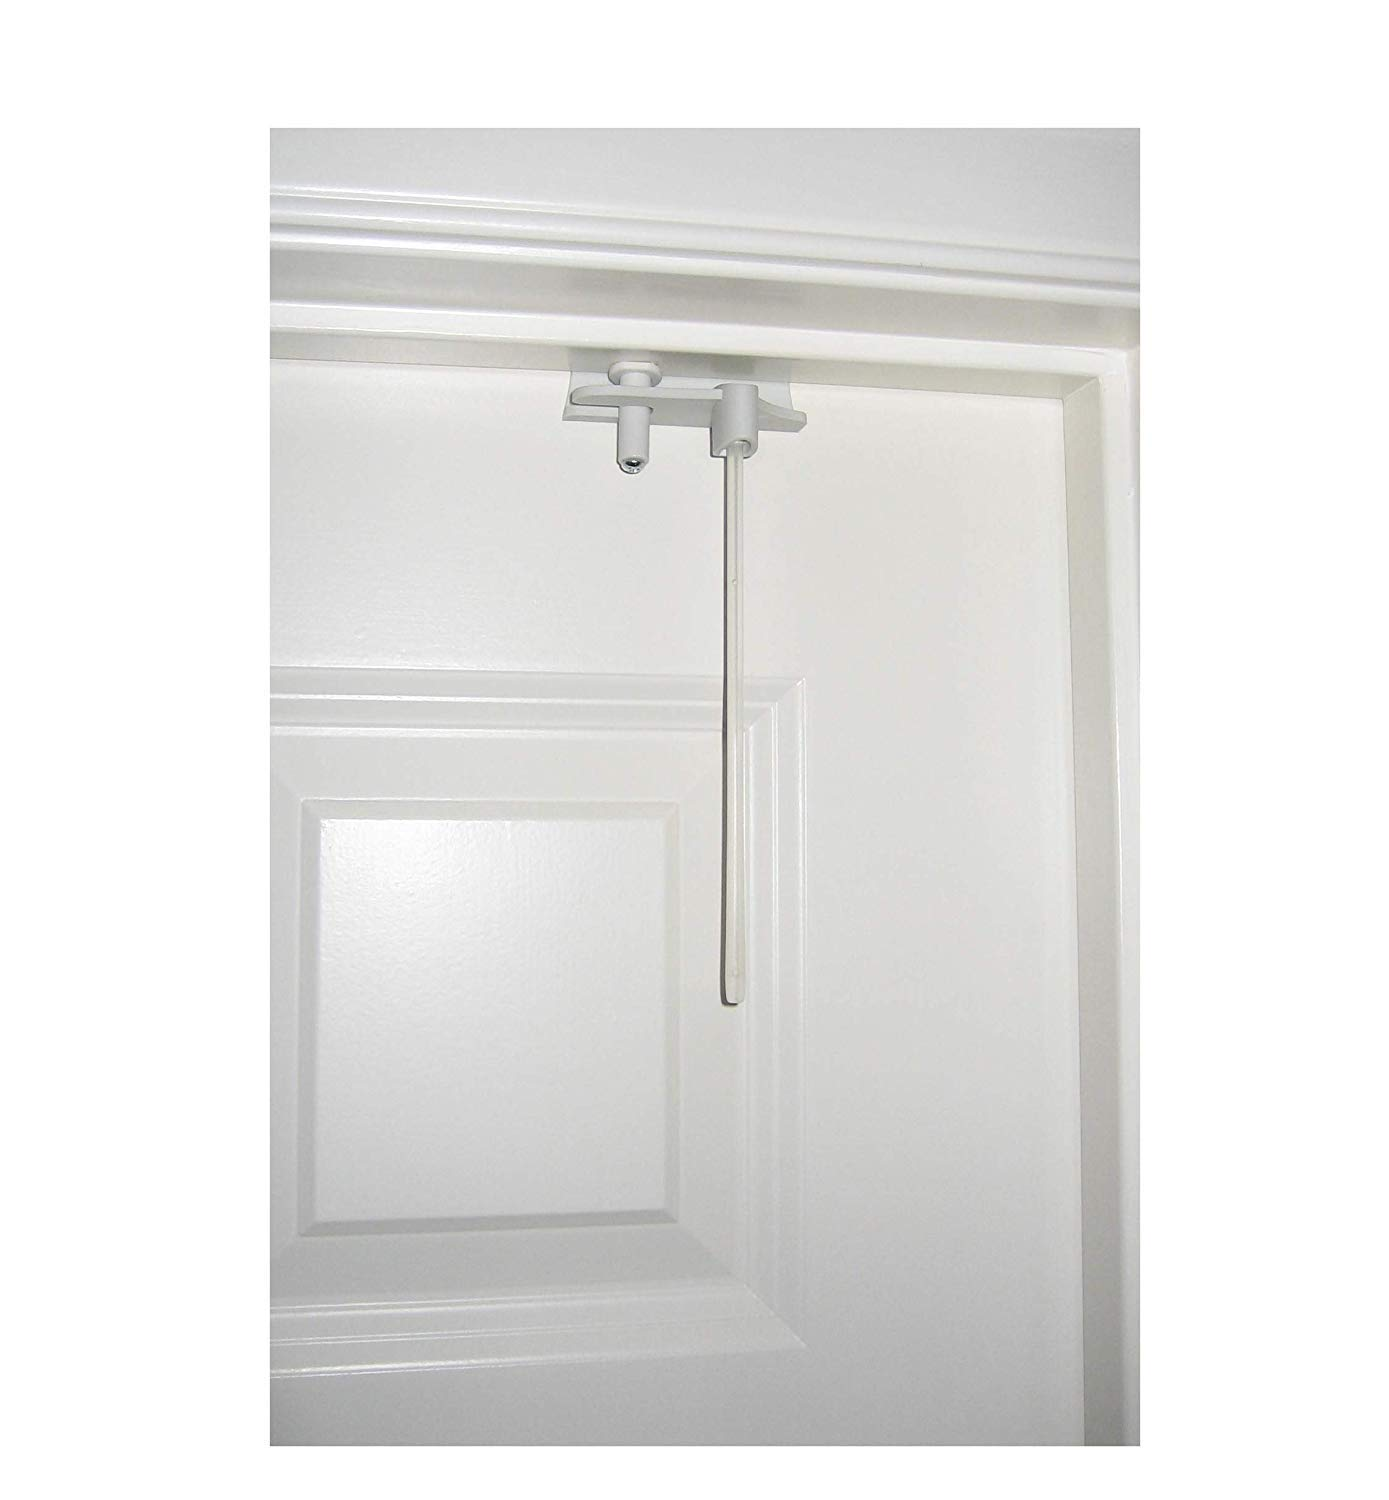 Safety Innovations Child Proof Deluxe Max 82% OFF Door Top 3 in 8 for 1 Lock Detroit Mall